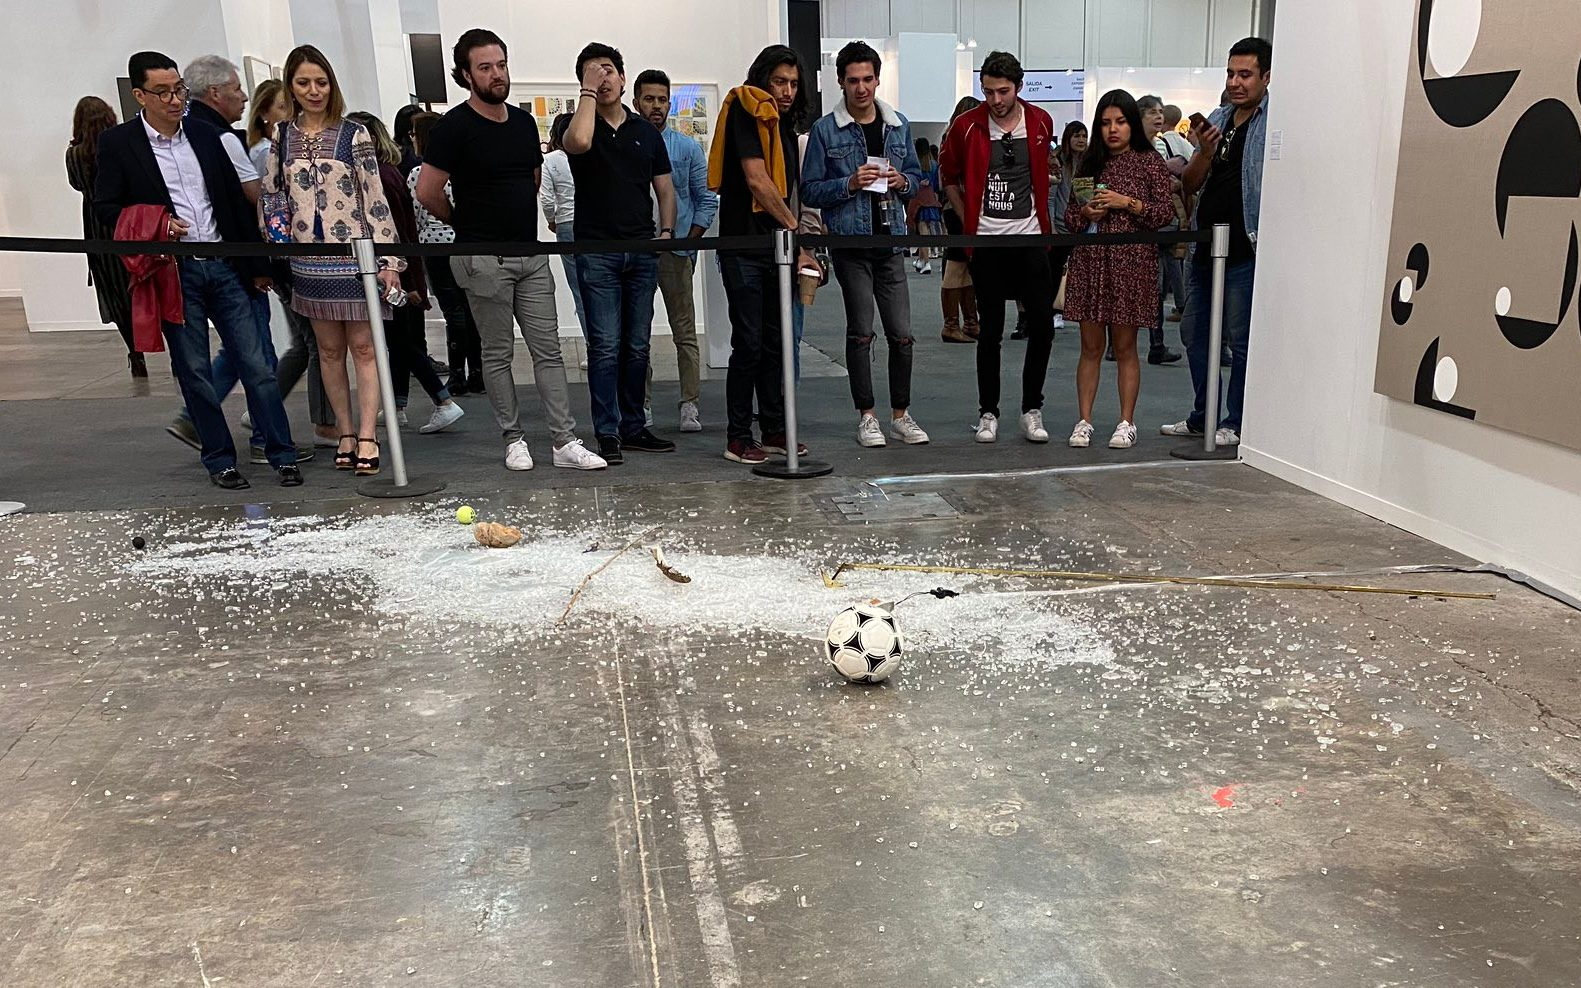 Art critic accidentally destroys $20,000 contemporary installation at Mexico's premiere art fair